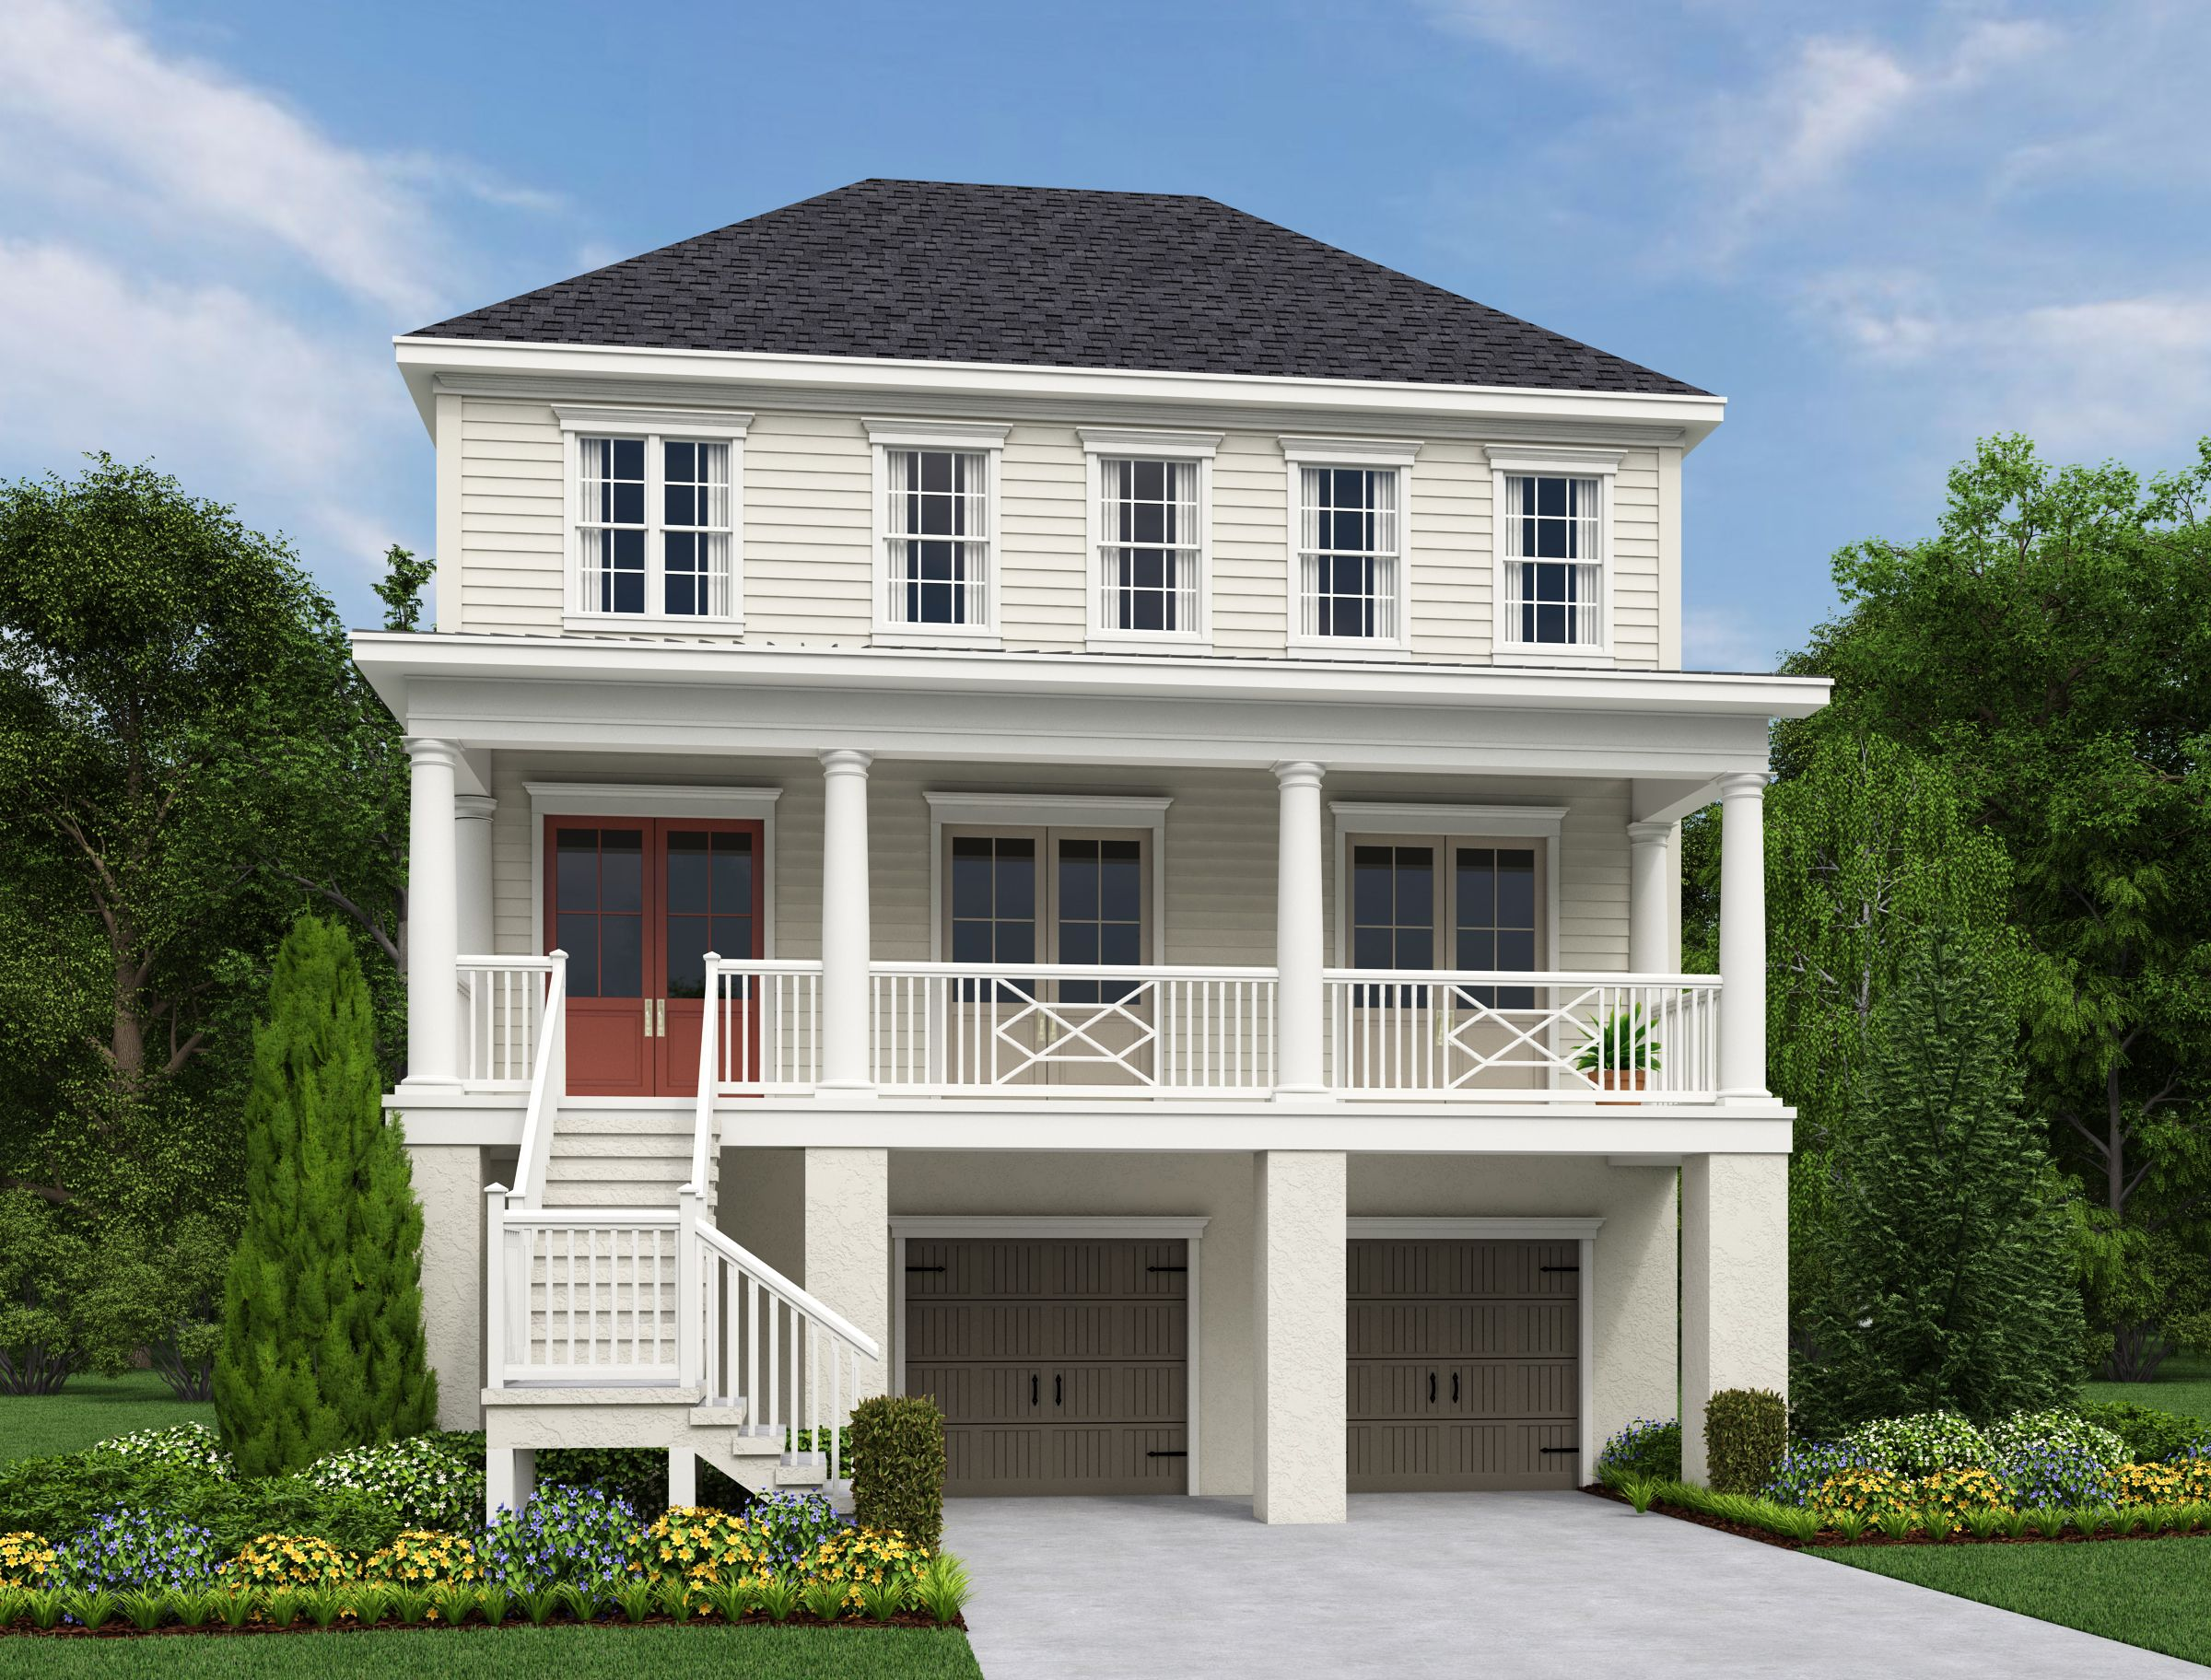 Stratton by the sound in mount pleasant sc new homes for Stratton builders